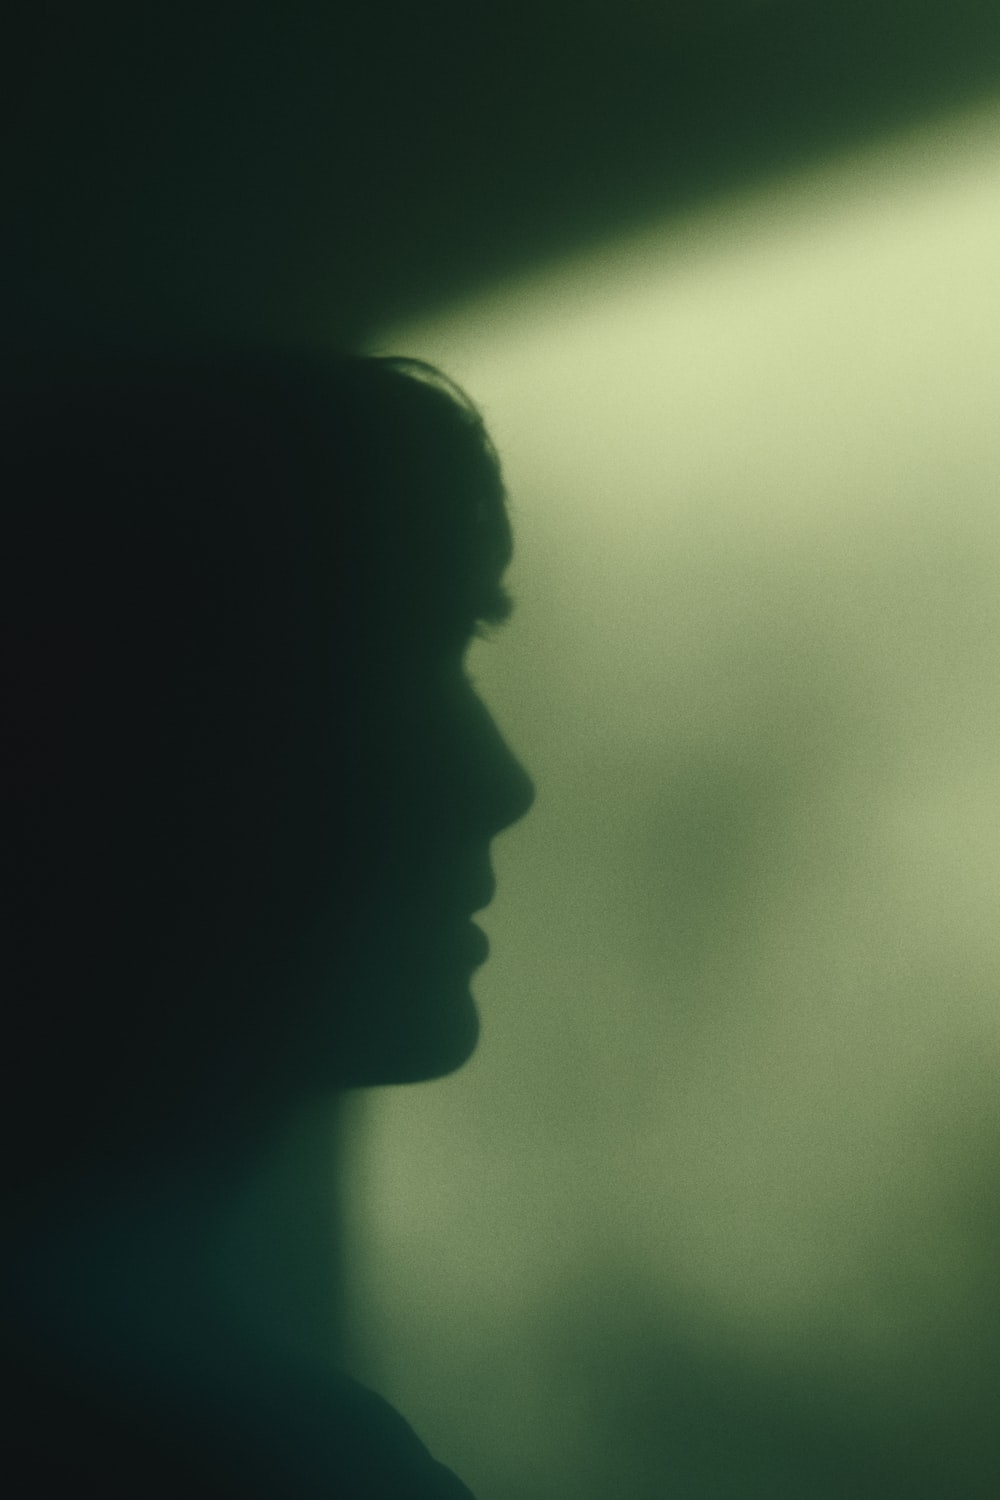 silhouette of womans face